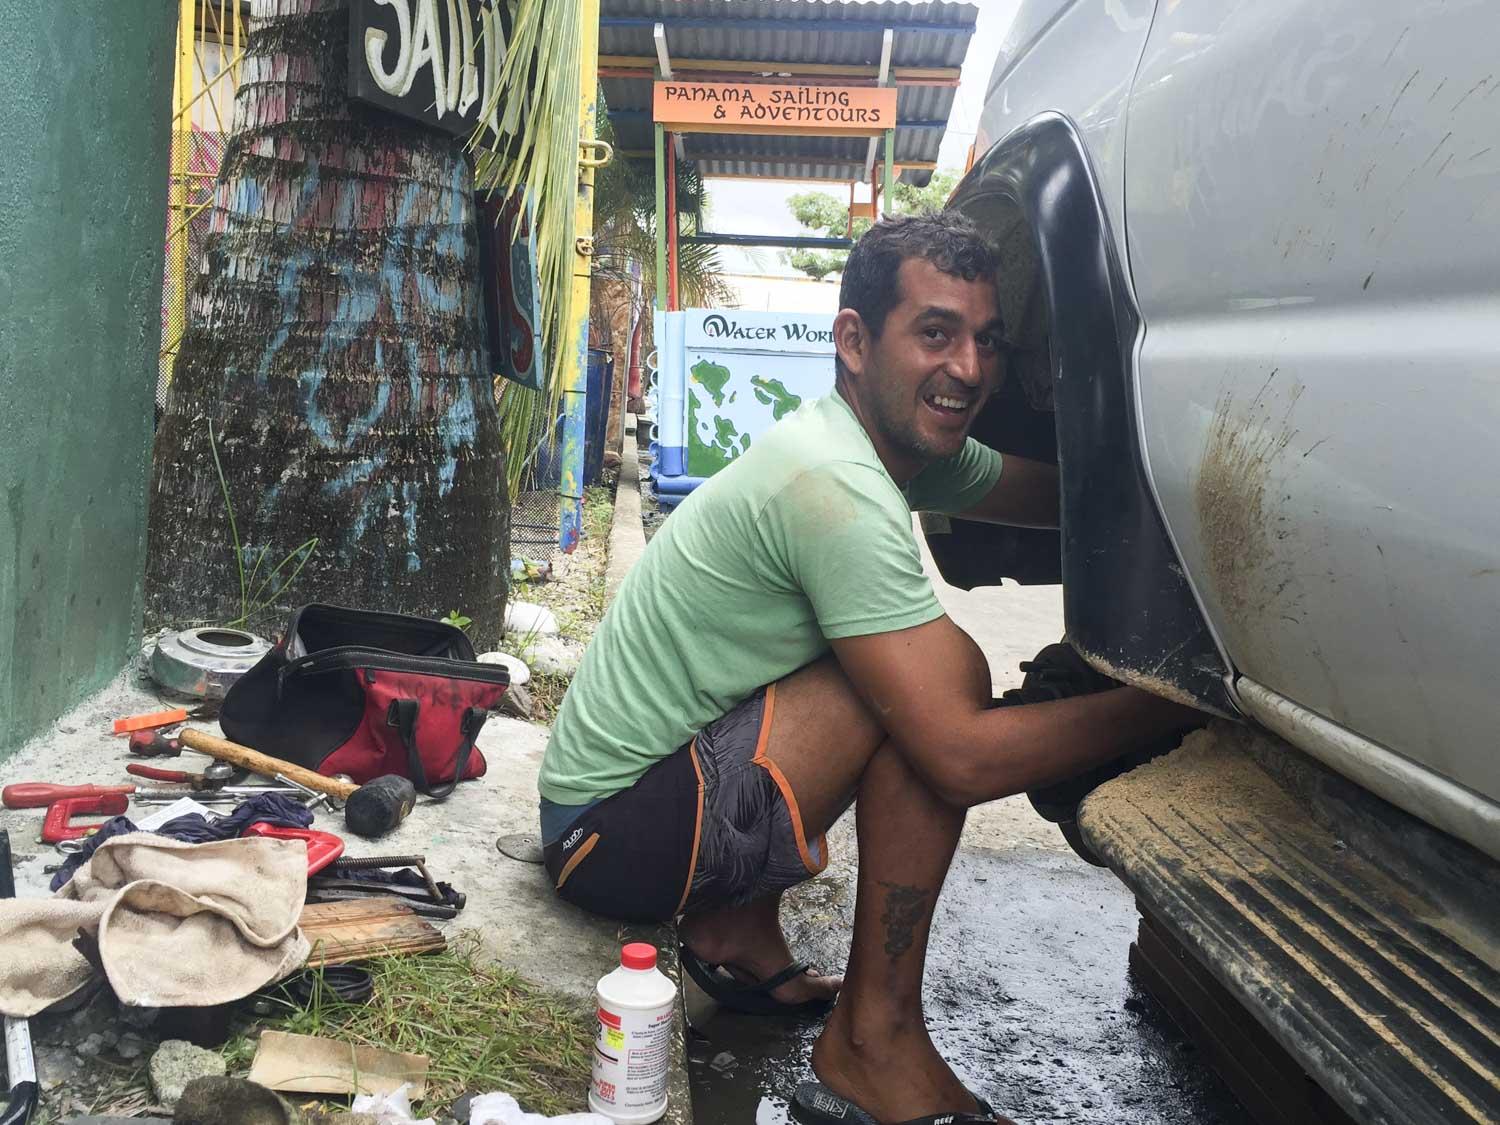 Improvising mechanic on the side of the road